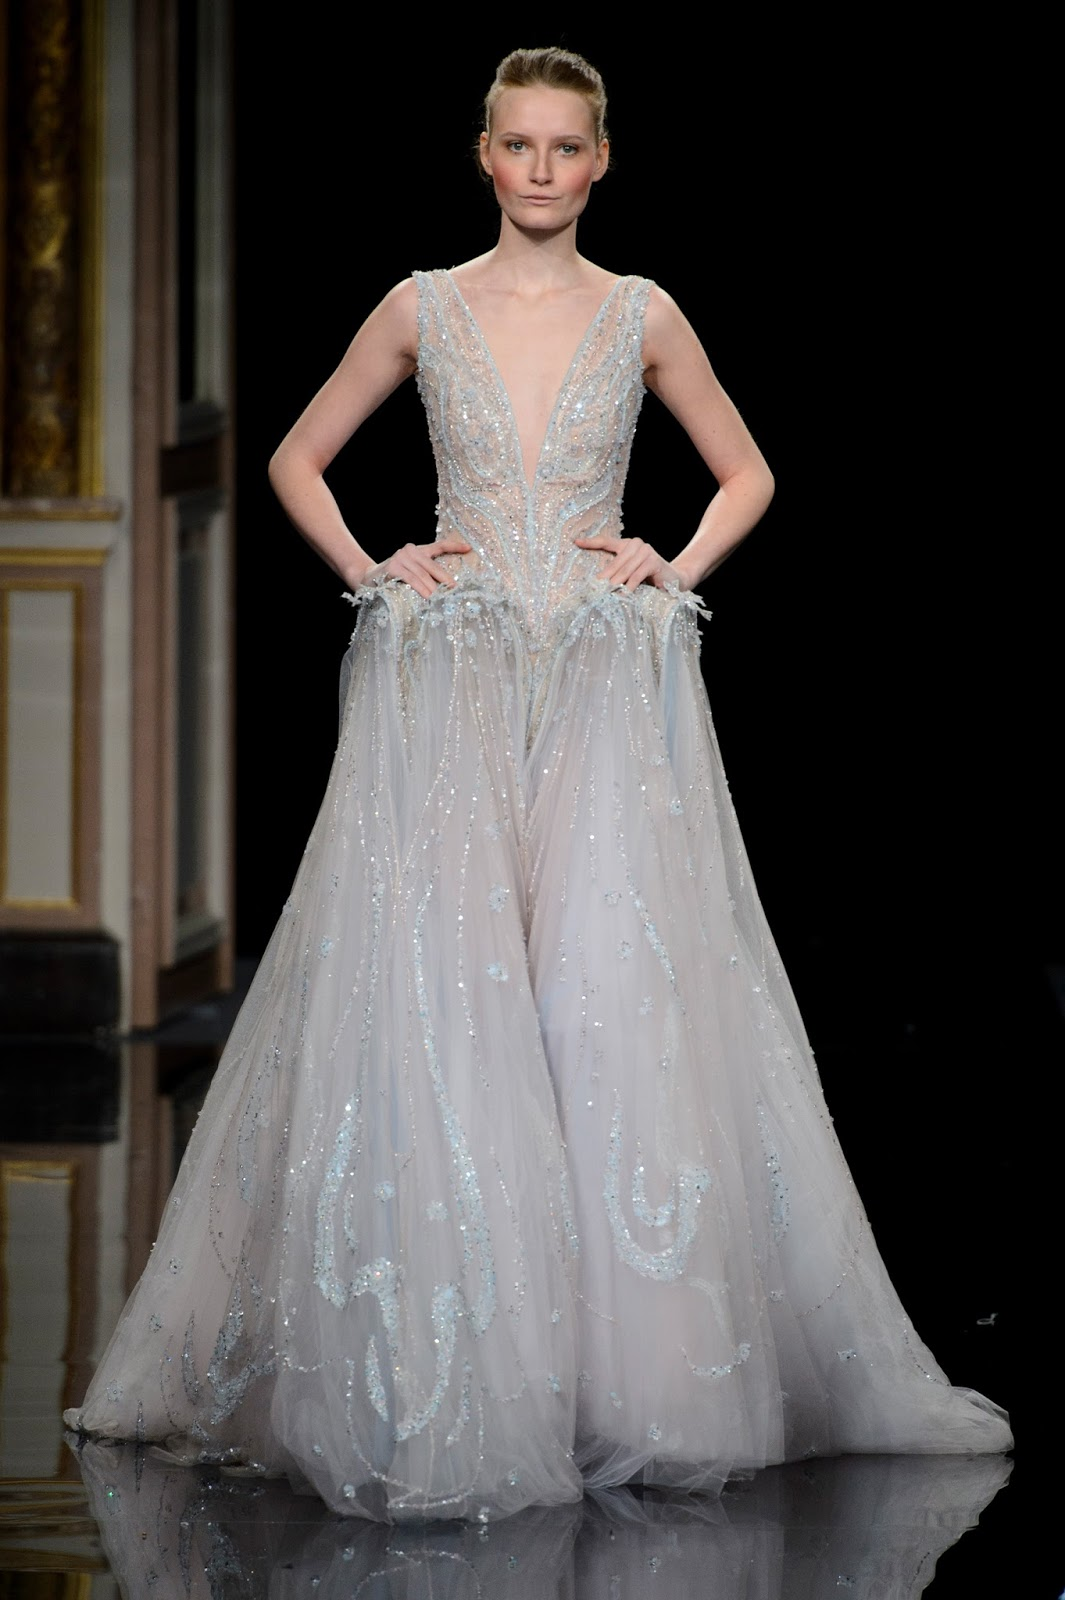 Breathtaking gowns ziad nakad february 16 2017 zsazsa for Ziad nakad wedding dresses